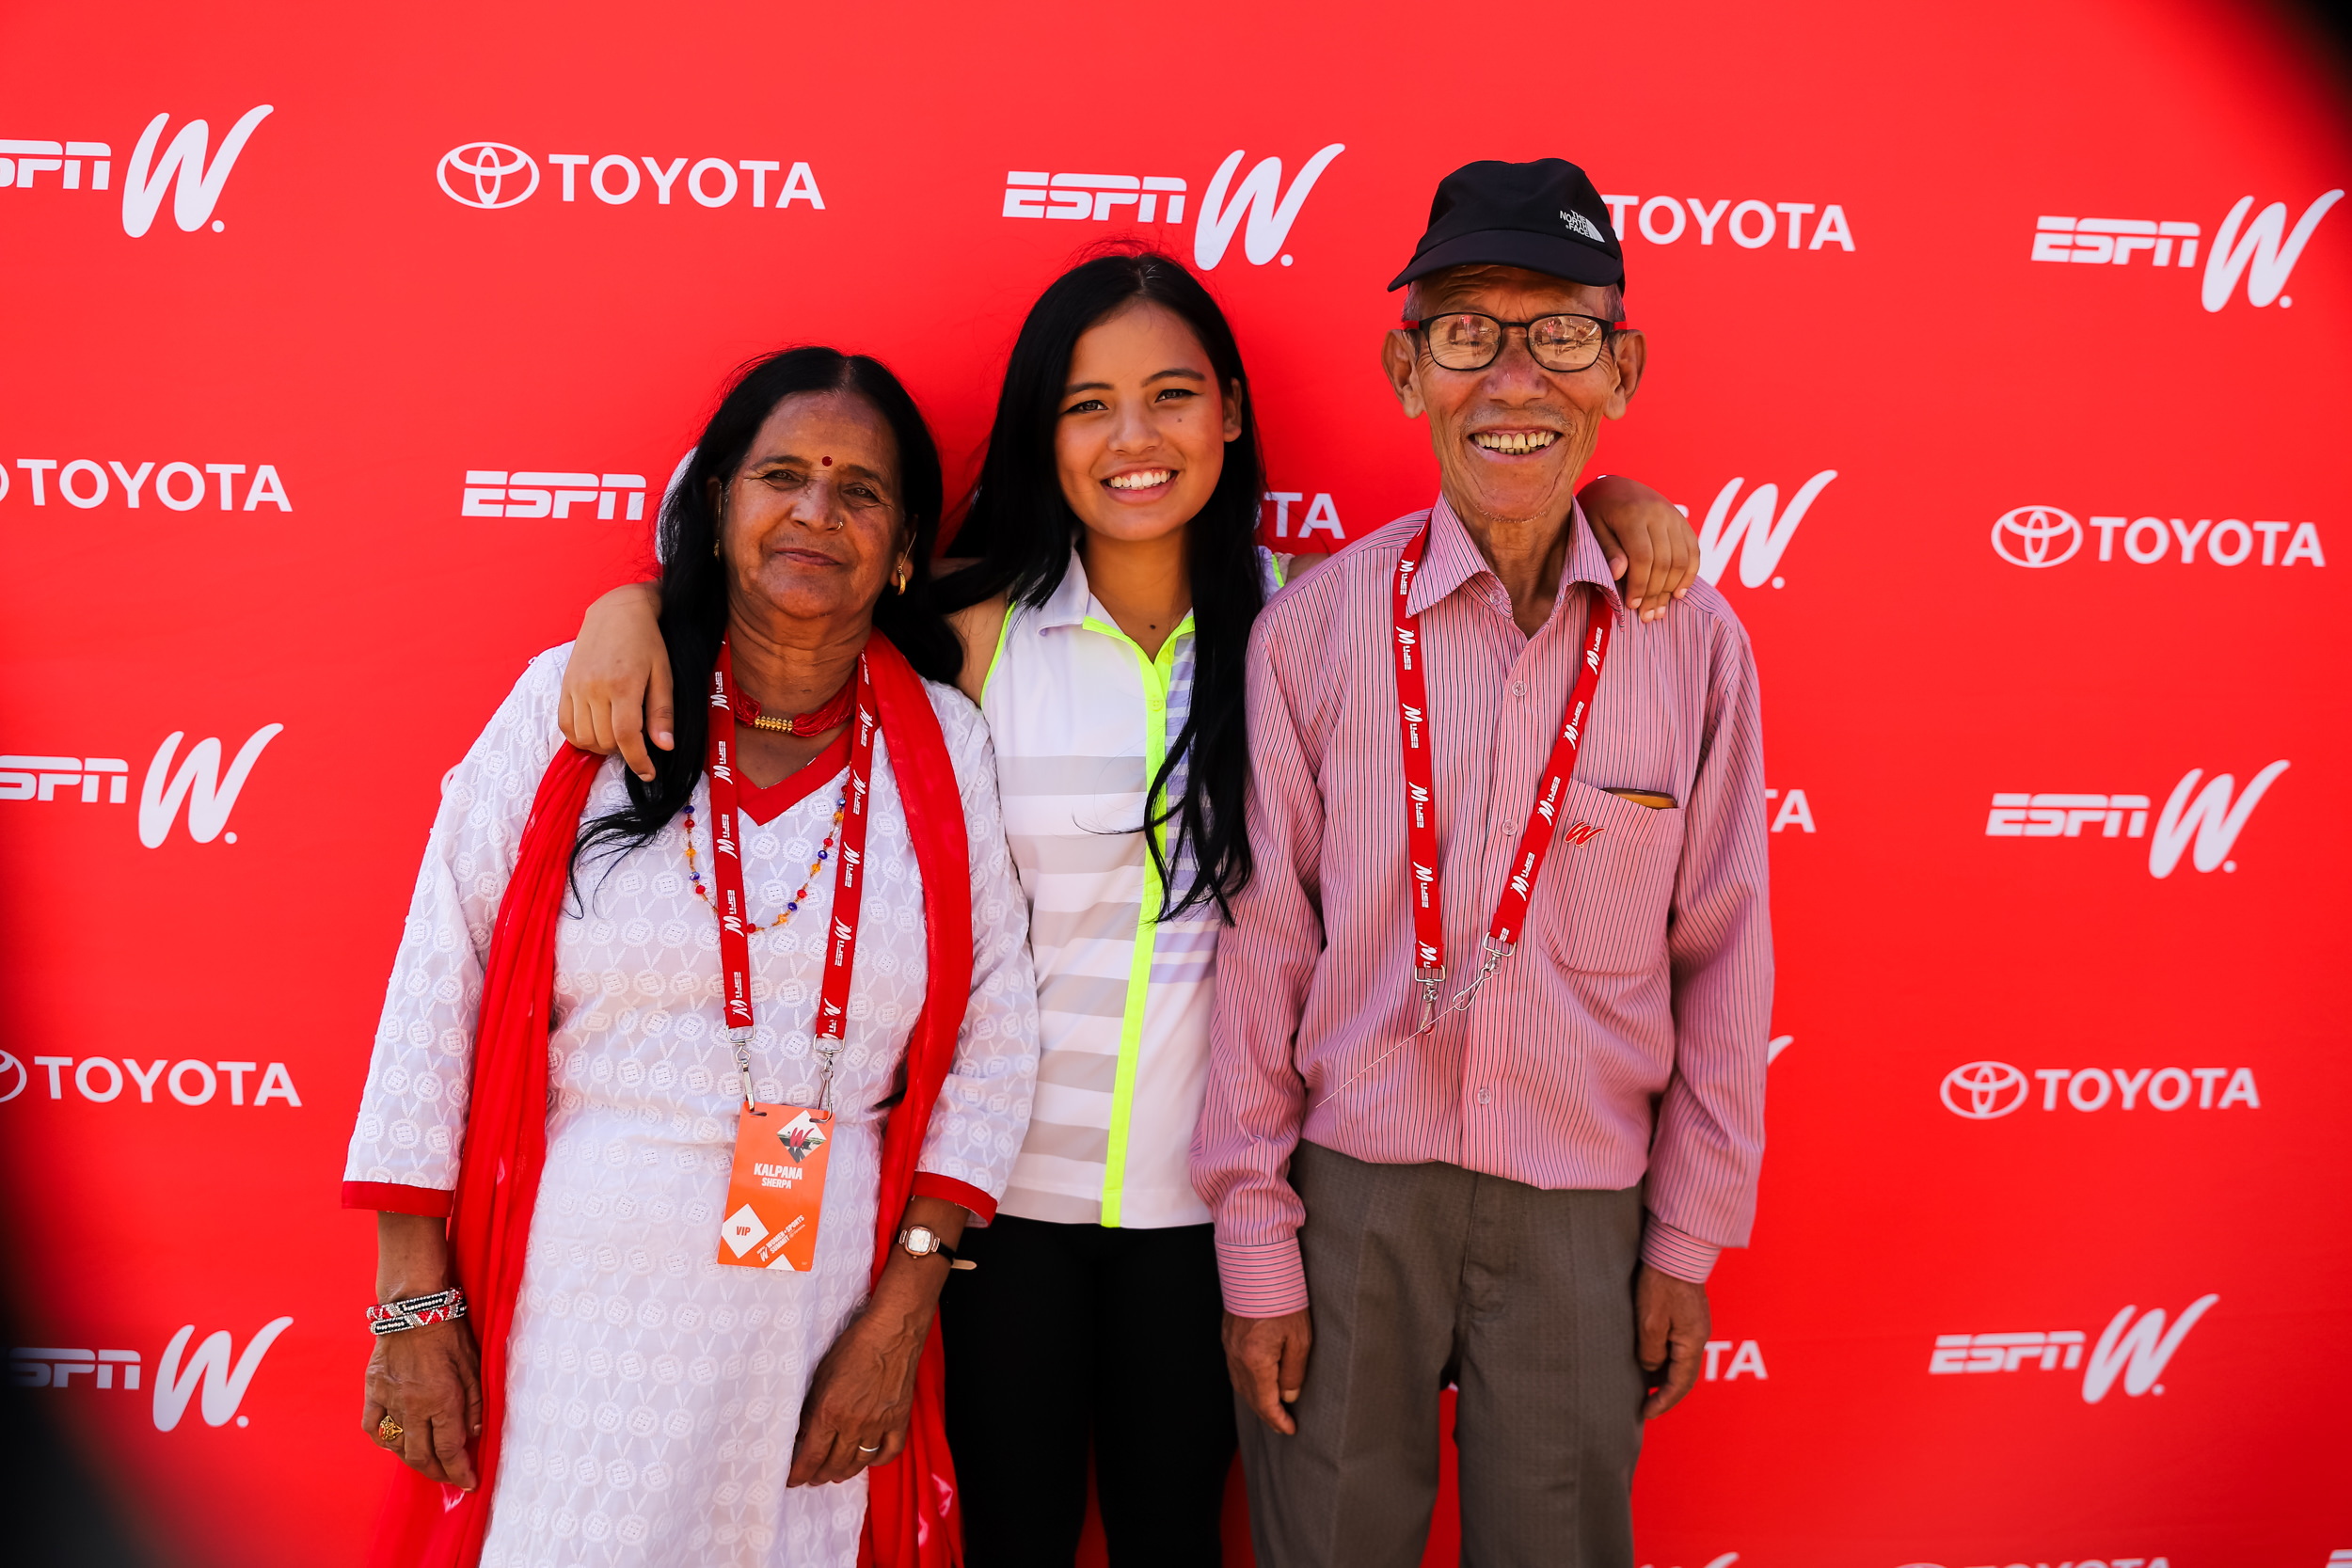 espnw_summit_2018_035